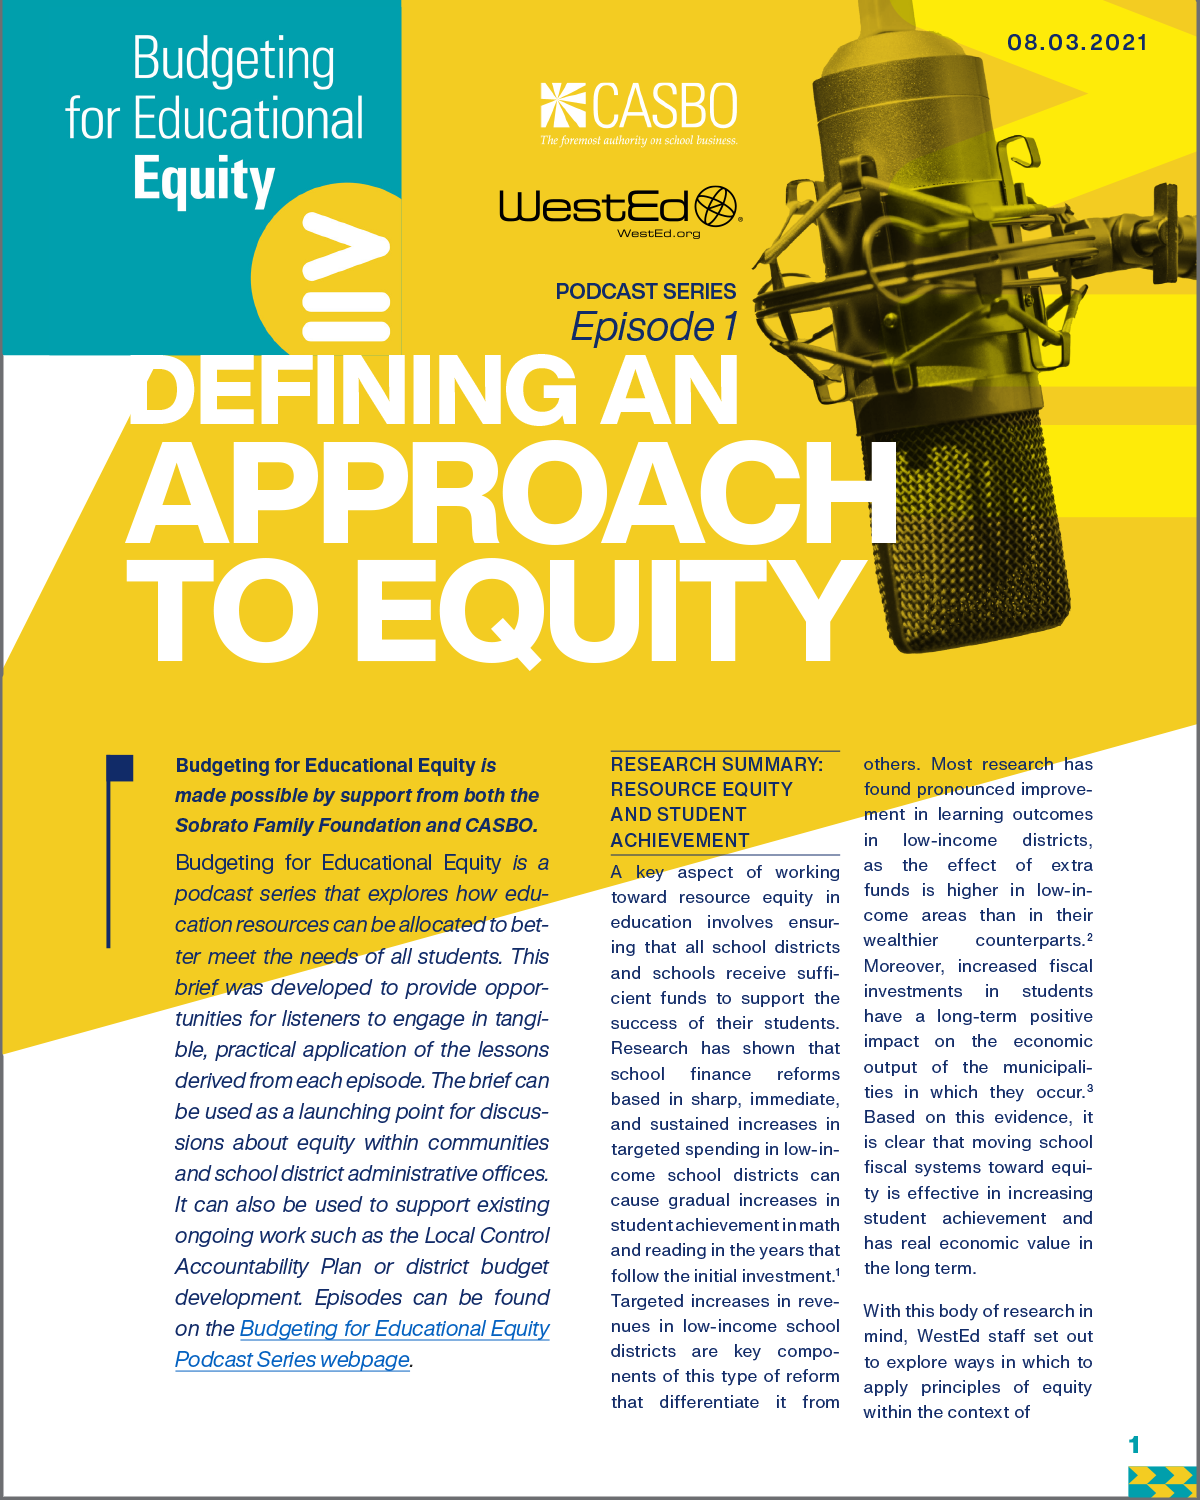 Podcast Series, Episode 1: Defining an approach to equity